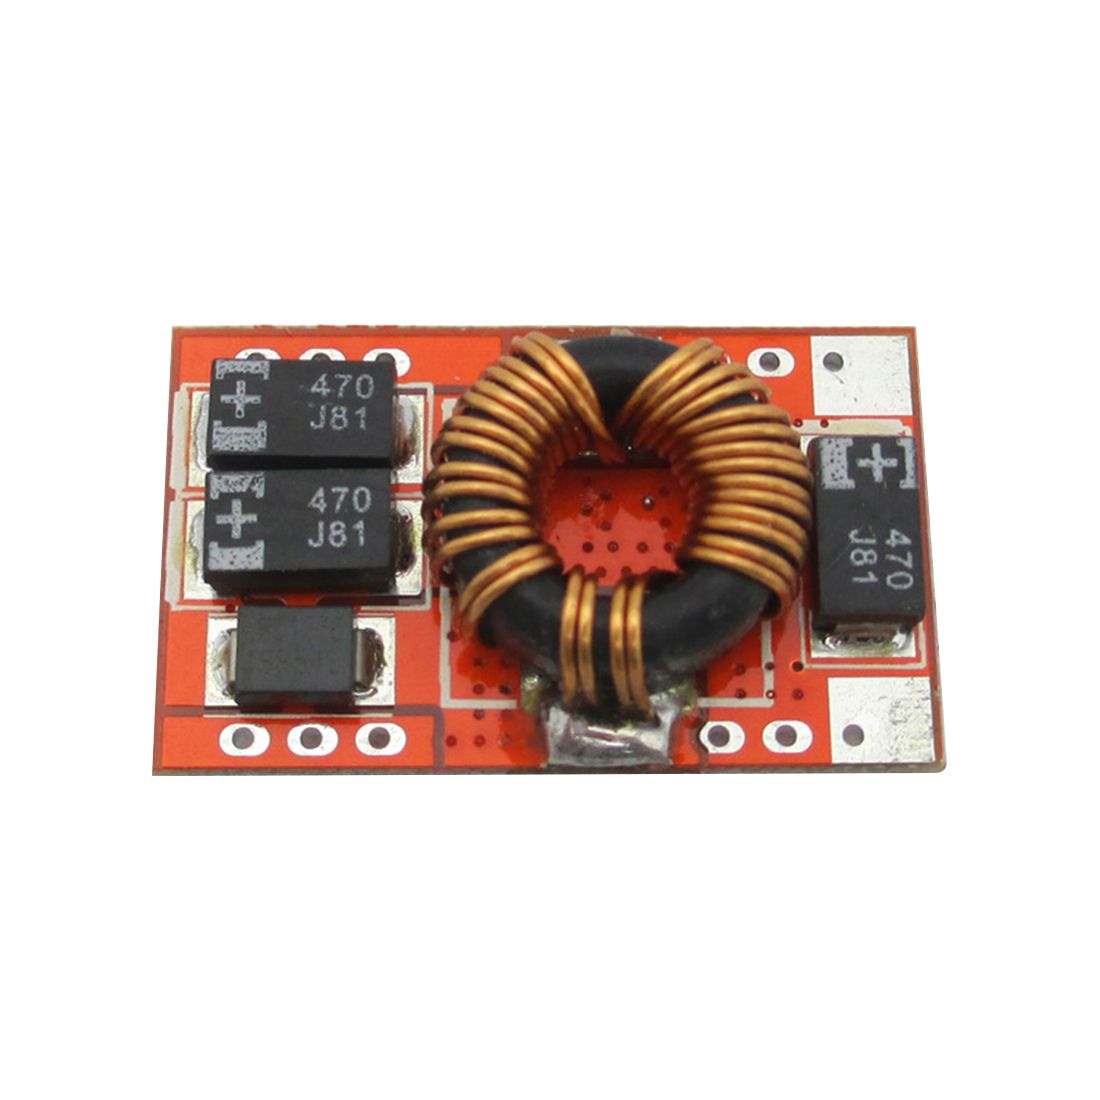 JFBL Hot Boost module special efficiency 92% DC-DC boost circuit board 5V / 3A instant 5A ultra-small volume